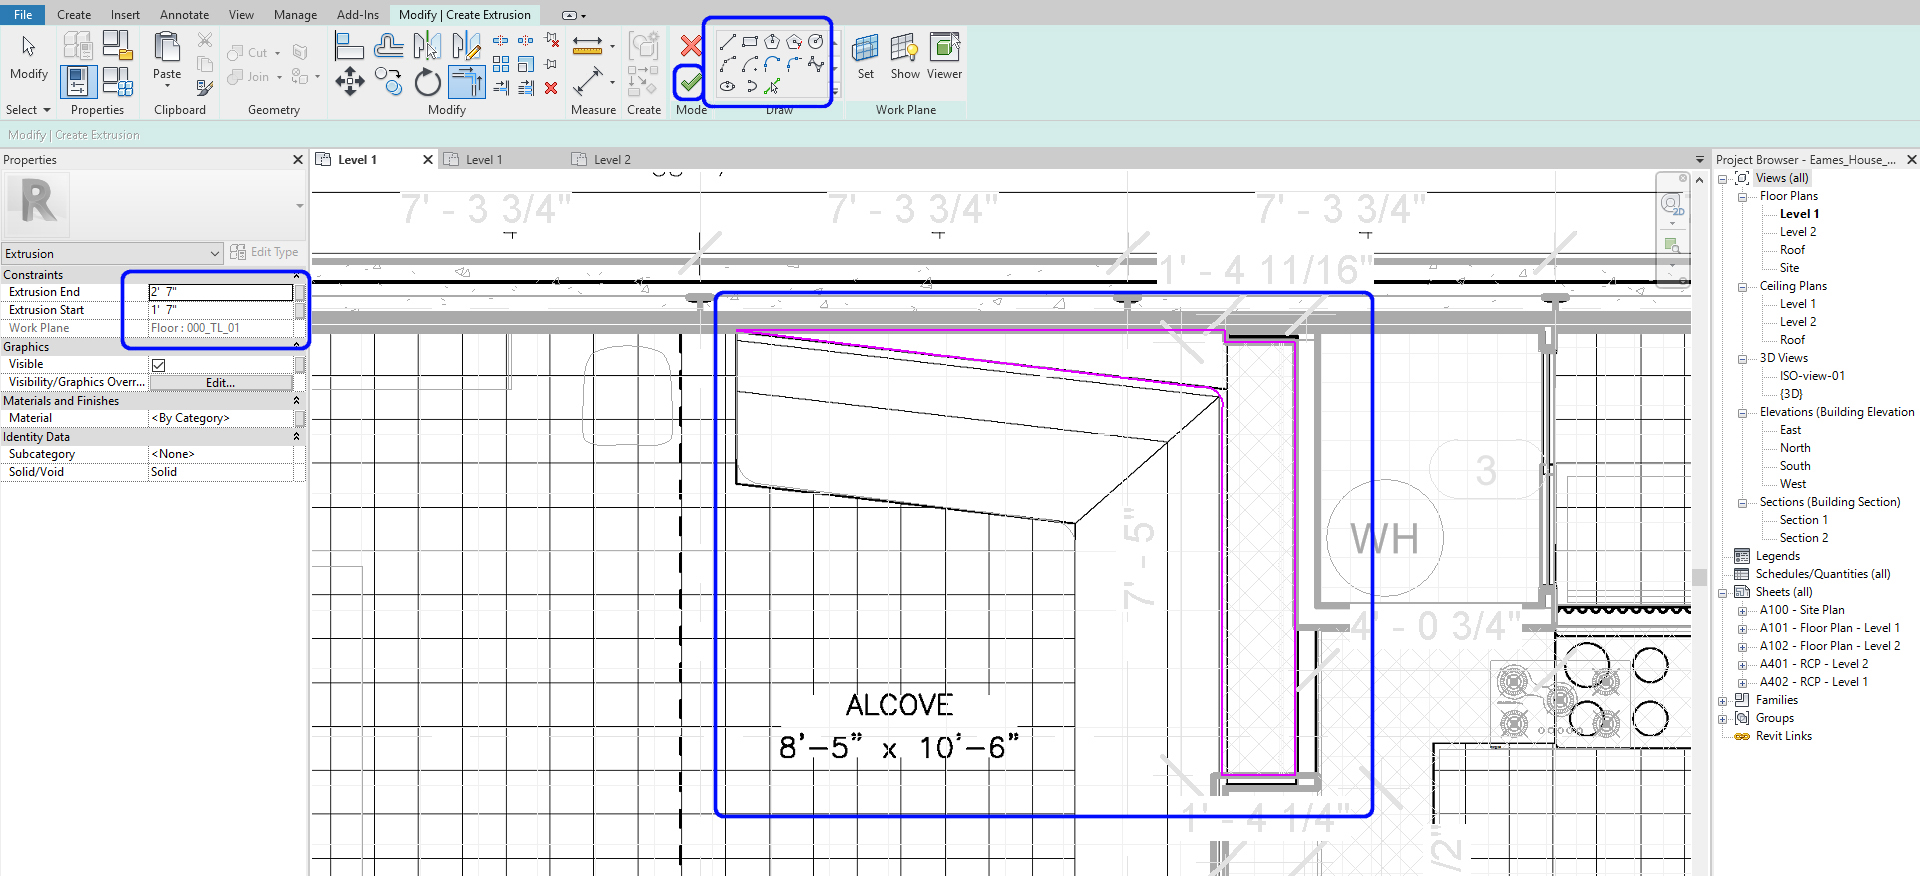 It indicates how to draw lines for the component-model in-place.